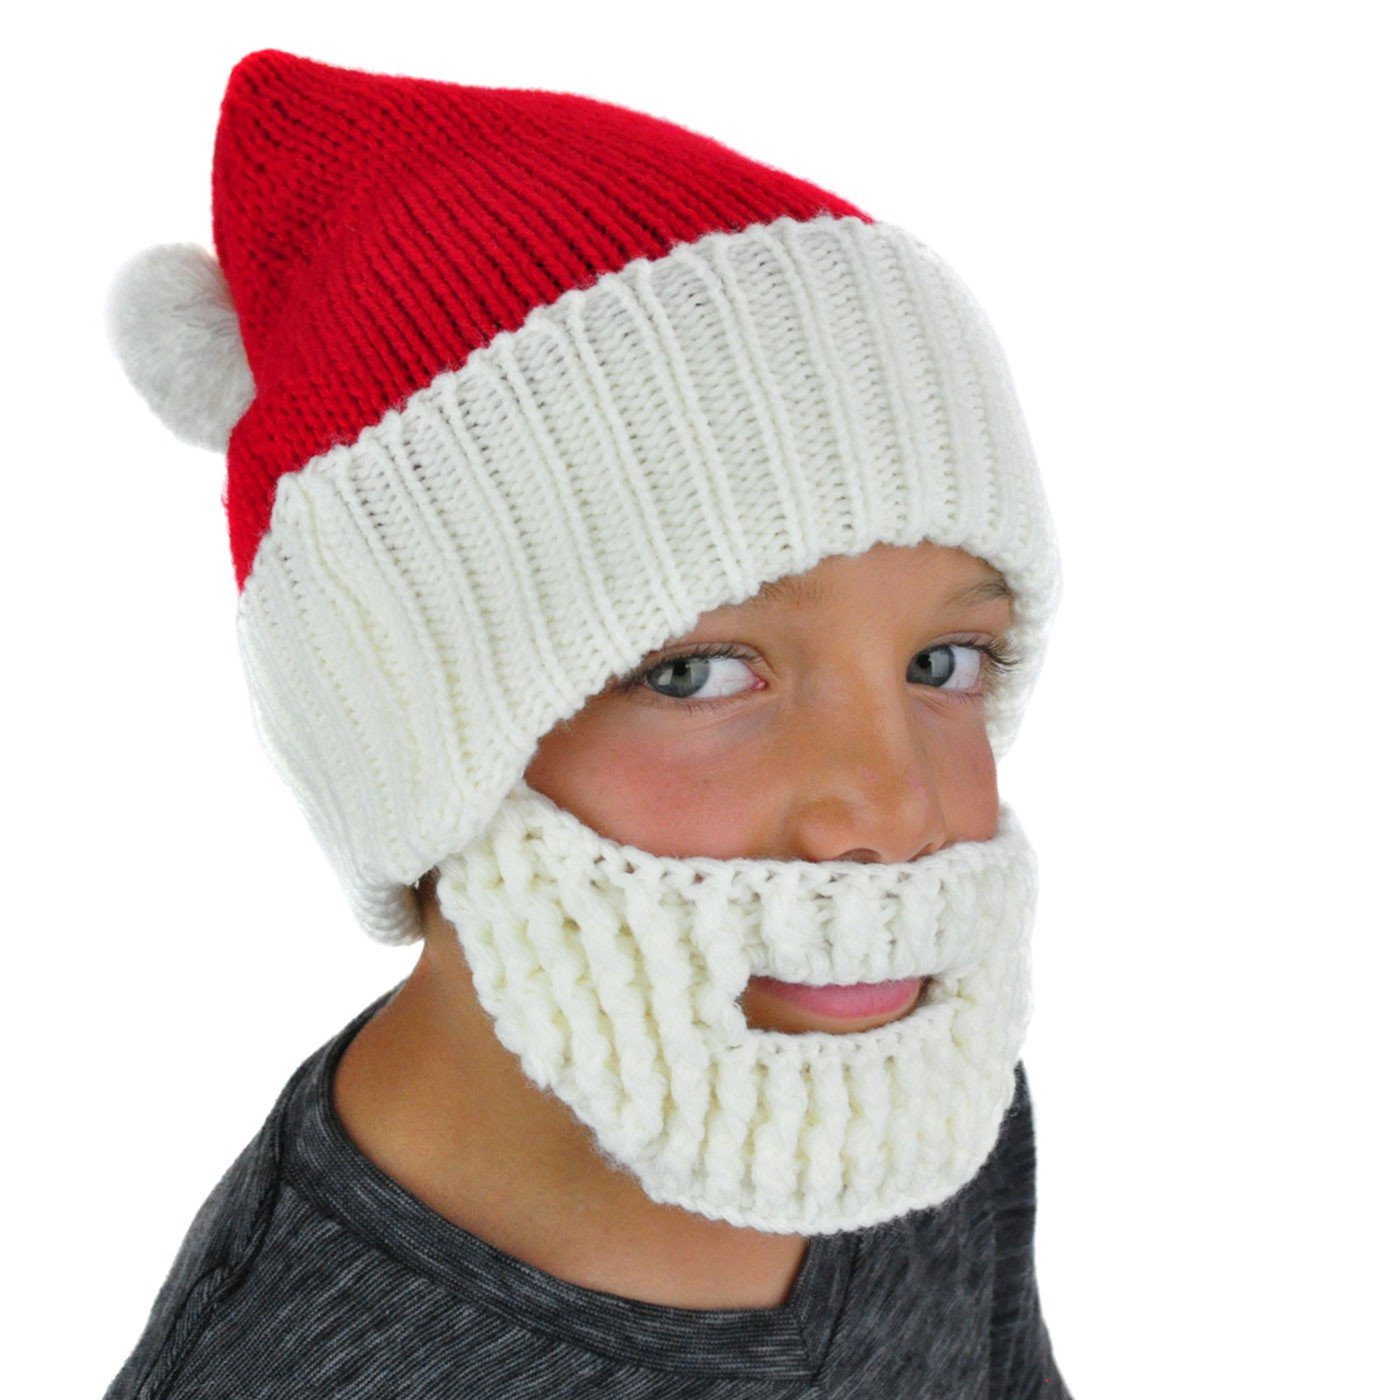 Santa Hat Beanie With Beard - Kids Boys Mens Fun Cute Ski Winter Knit Snowboard NeonEaters